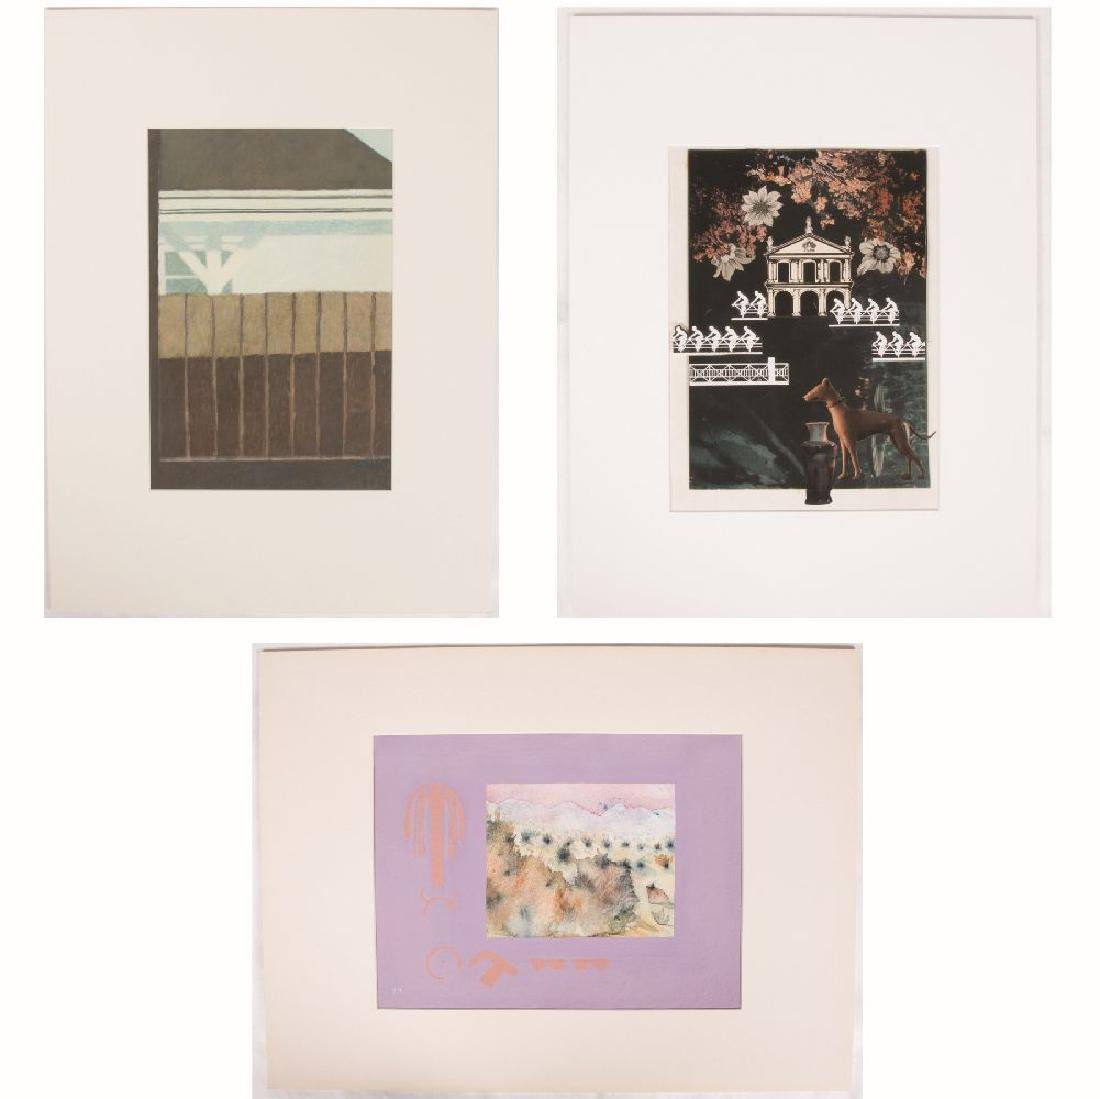 A Group of Three Contemporary Artworks by Various